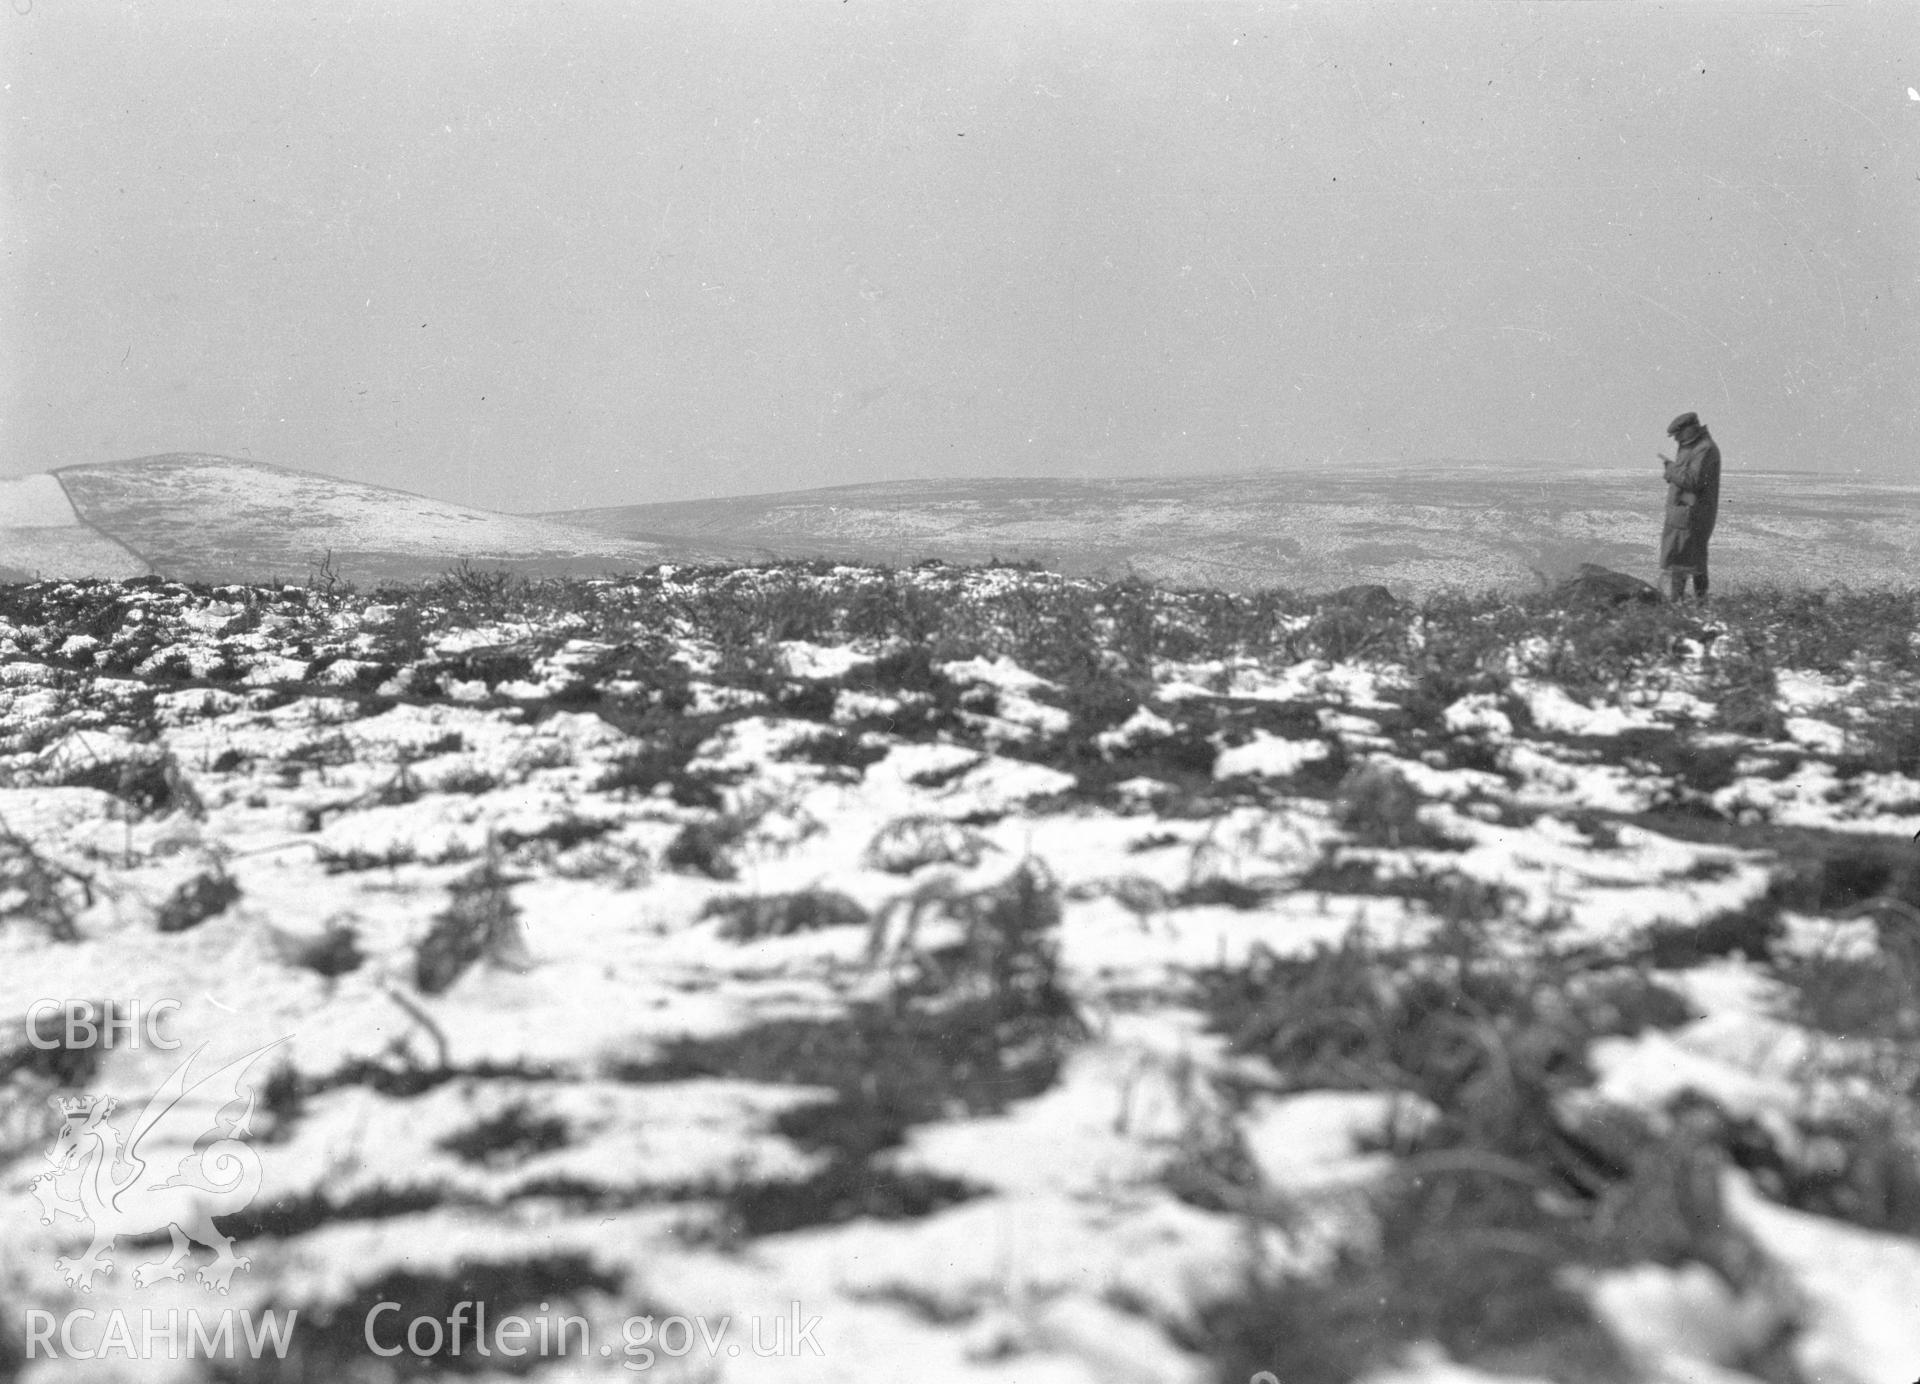 Digital copy of nitrate negative showing Capel Hiraethog cairn. From the Cadw Monuments in Care Collection.